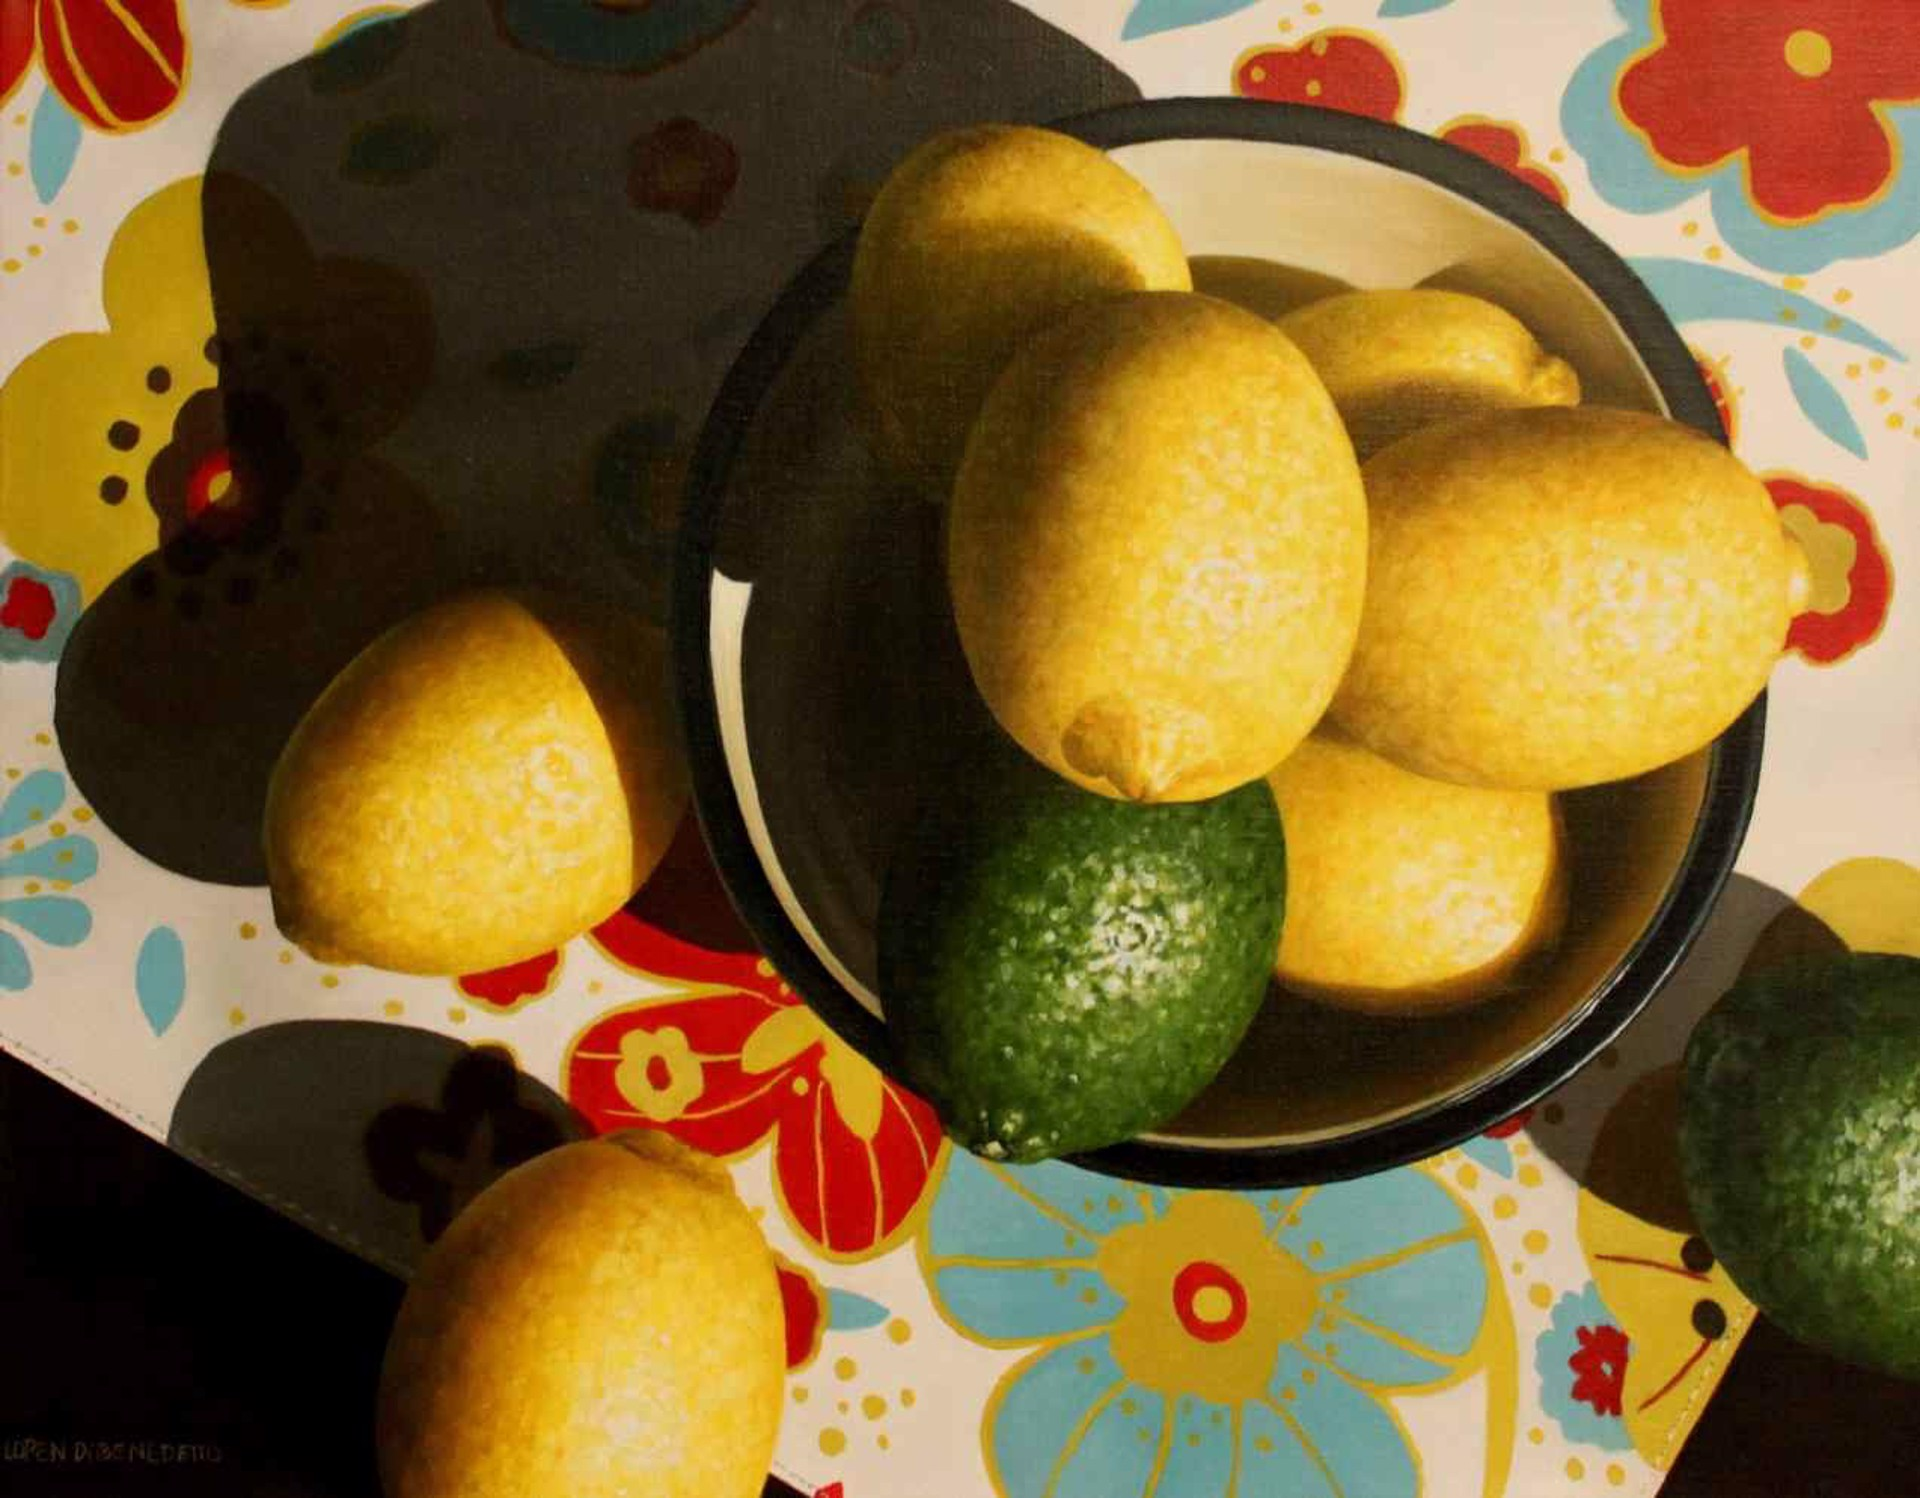 Lemons and Limes from Above by Loren DiBenedetto